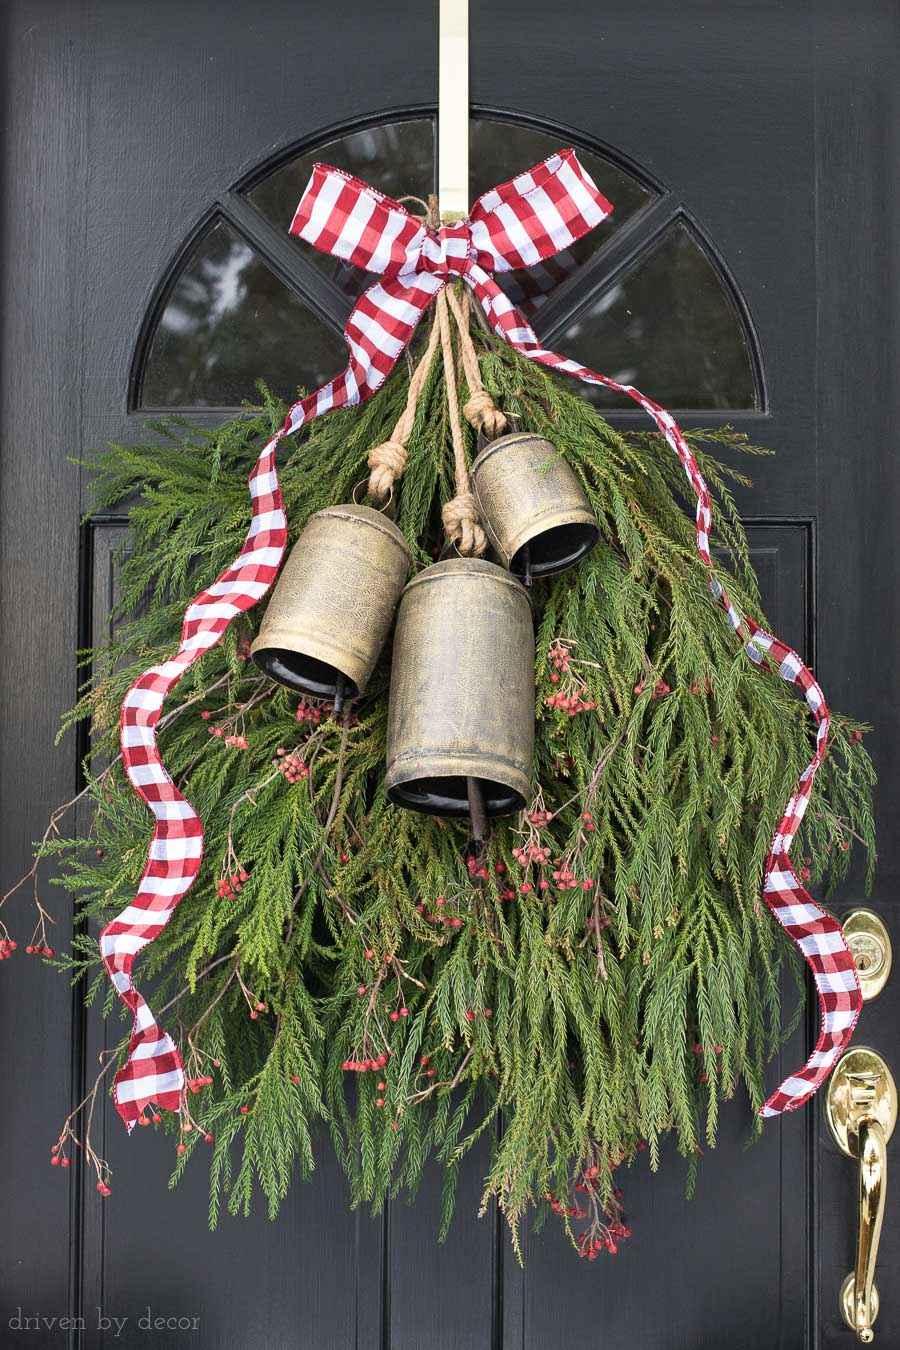 Our front door Christmas decoration - a greenery swag with bells and ribbon instead of a wreath!